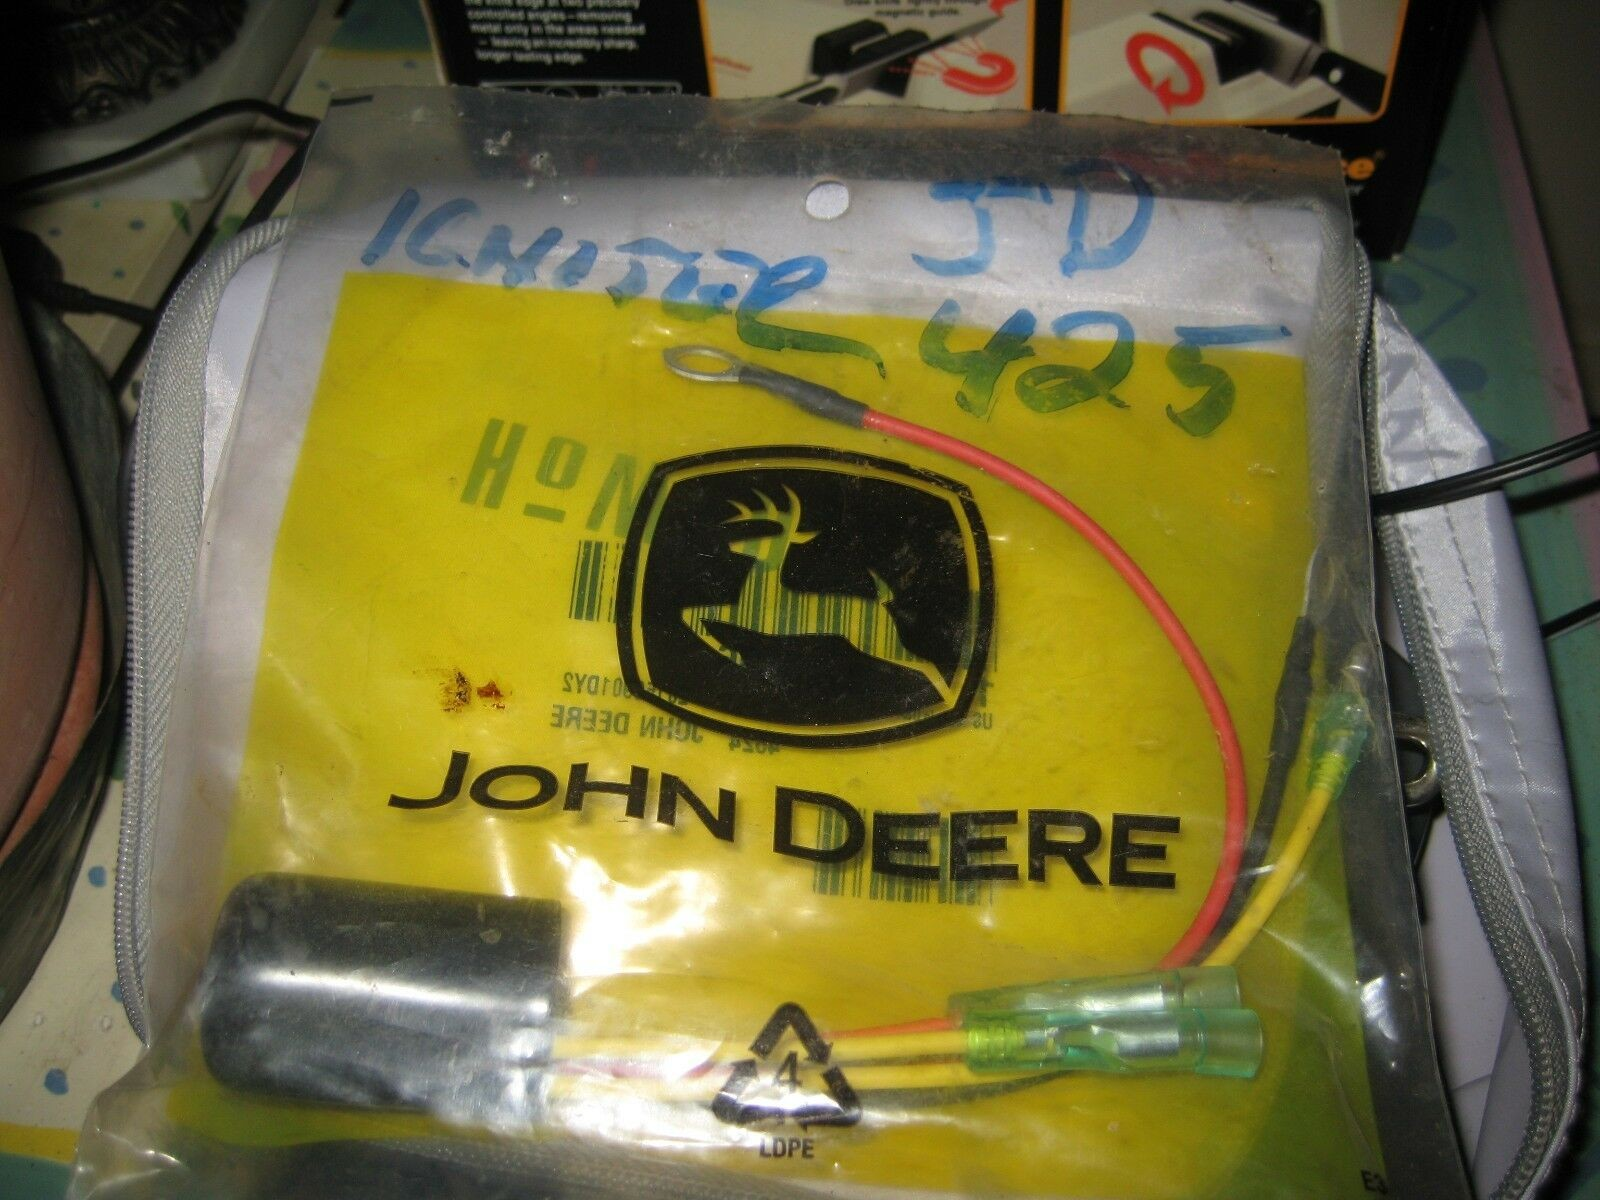 John Deere 345 Charging John Deere Oem Ignition Delay Module Am for 345 425 Of John Deere 345 Charging John Deere 285 320 345 Kawasaki 18hp Fd590v Plete Engine Am